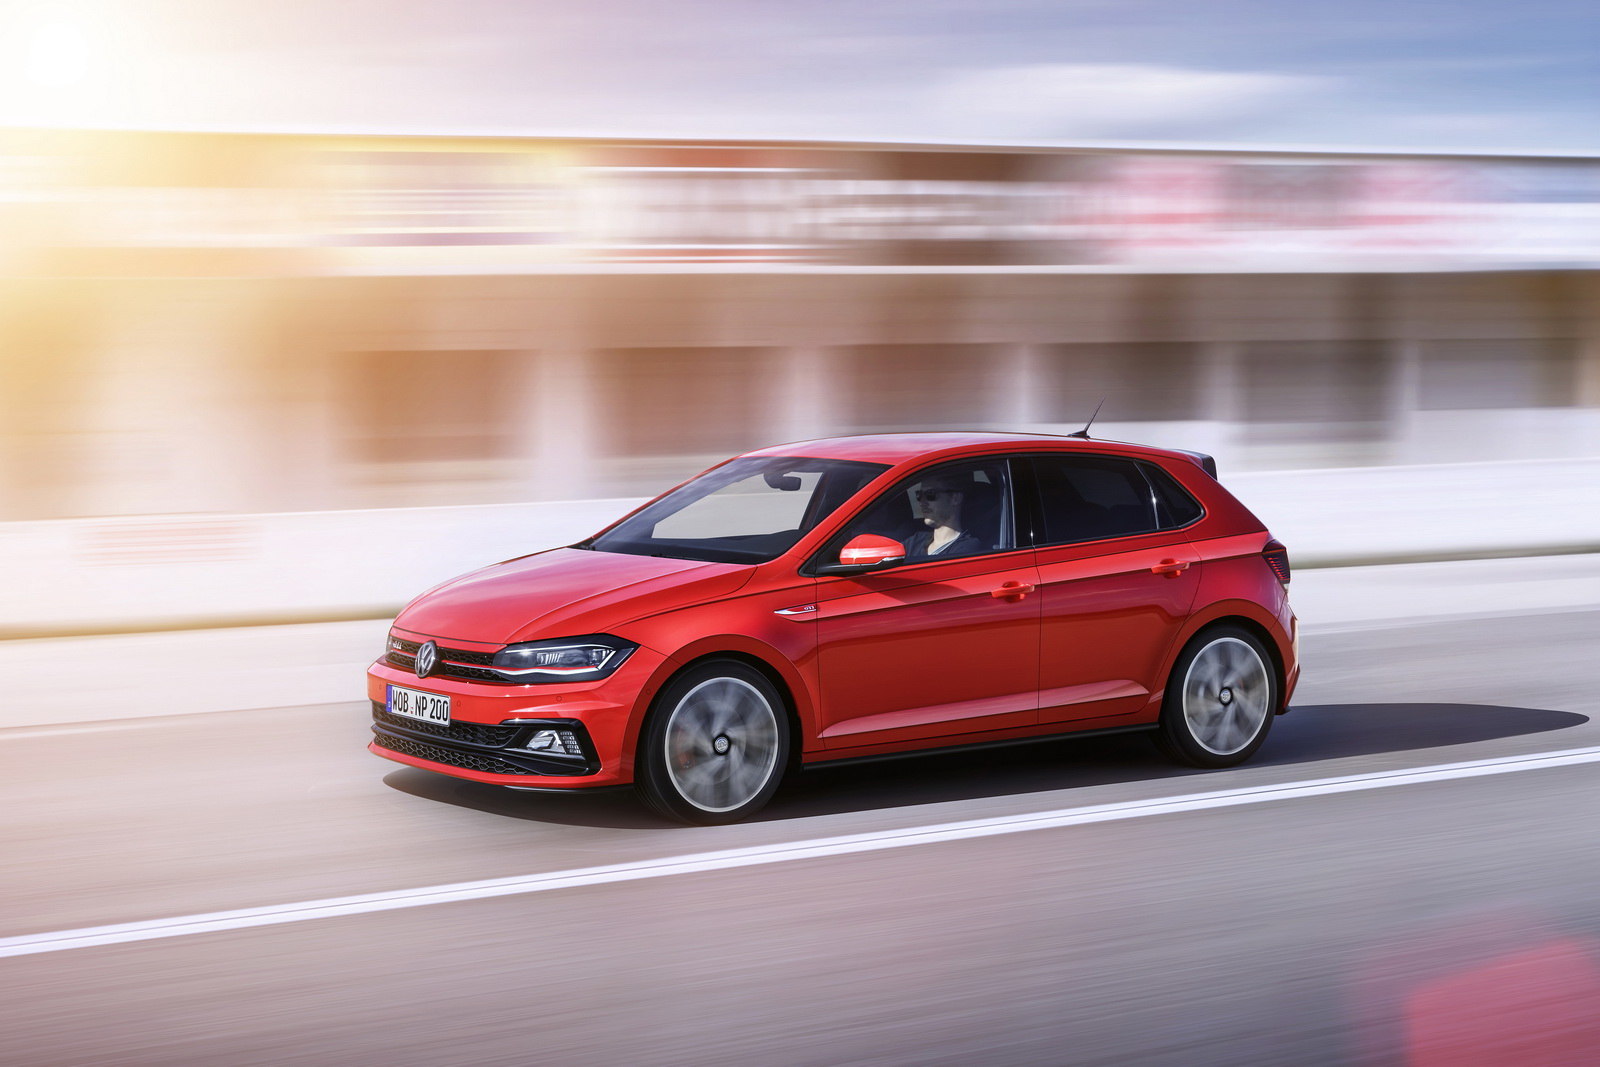 Volkswagen Polo and Polo GTI 2018 (38)